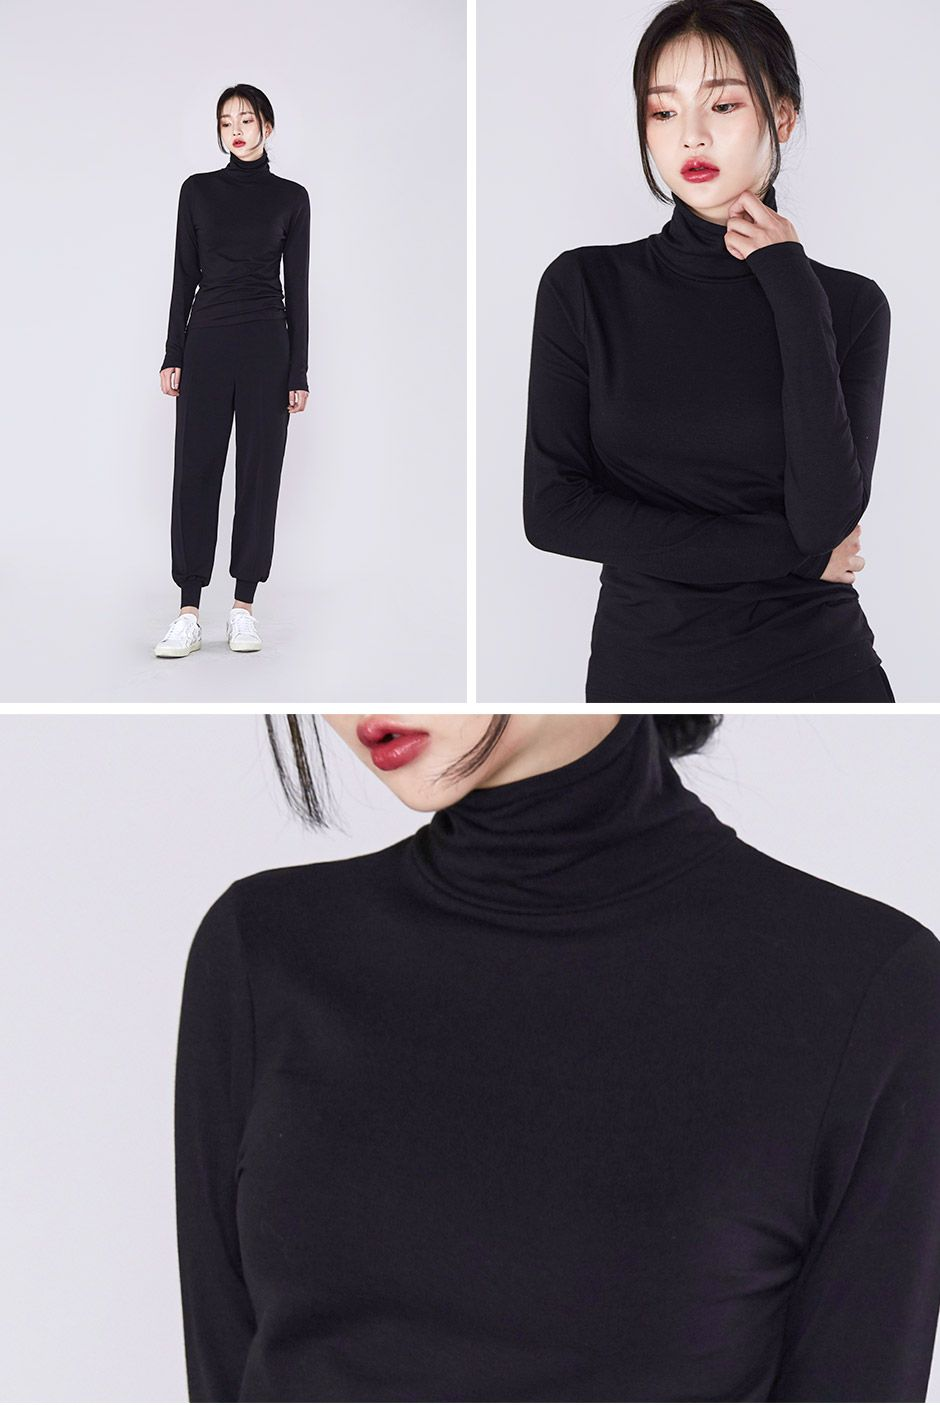 Turtle neck long sleeve i know you wanna kiss me thank you for